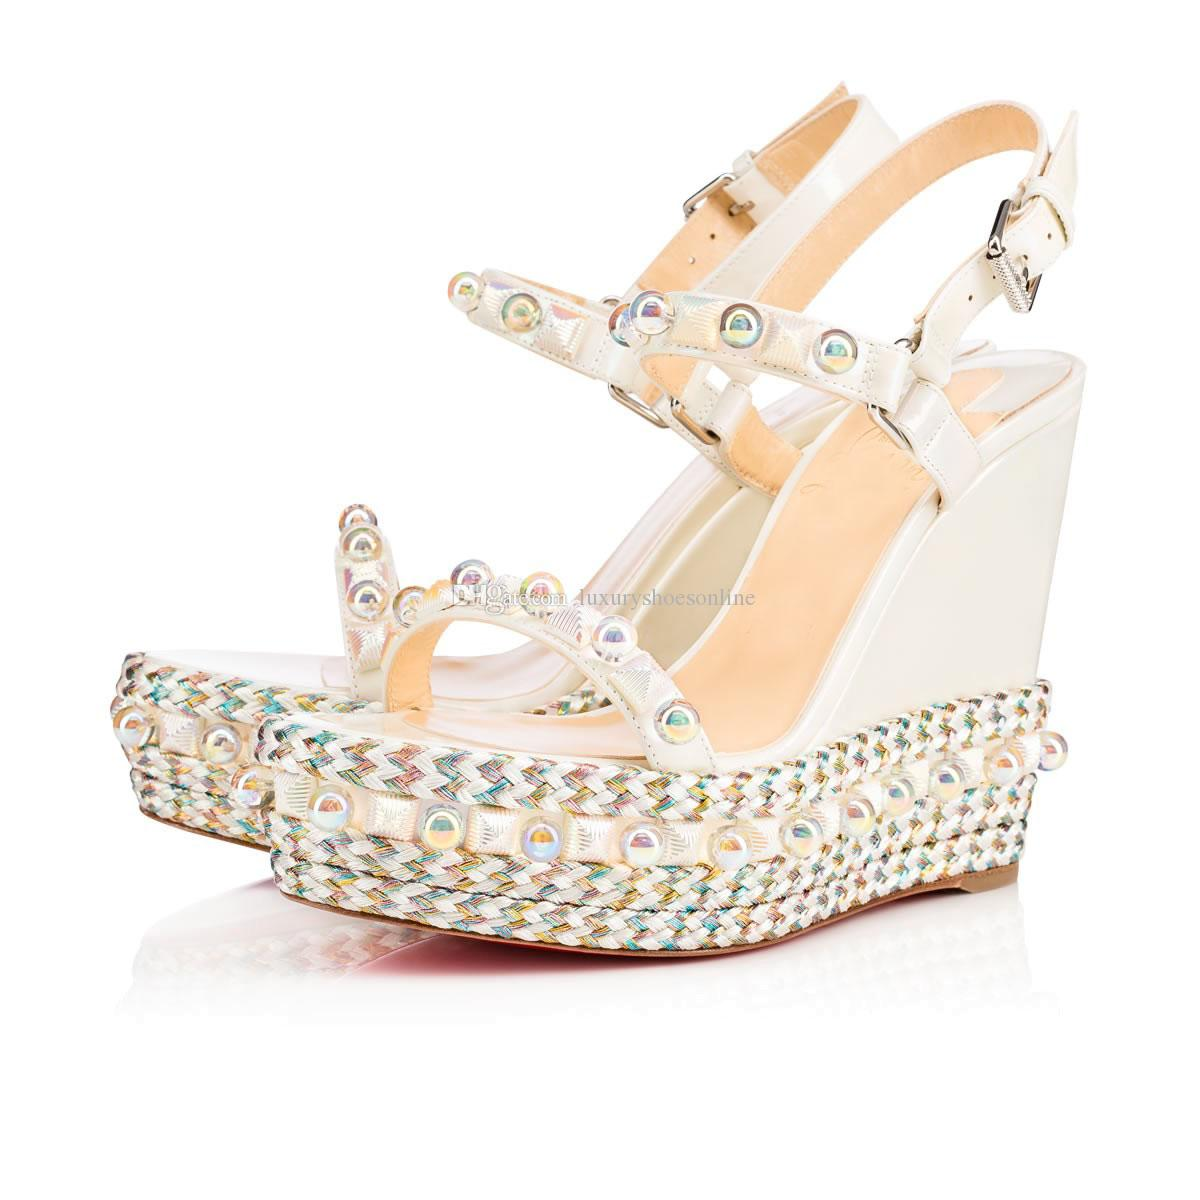 6f5fafc3a265 New Season SS18 Red Bottom Cataconico Calf Lady High Heels Espadrille  Inspired Women Wedge Ankle Strap Stud   Pearls Sandals EU35 42 Gladiator  Sandals ...